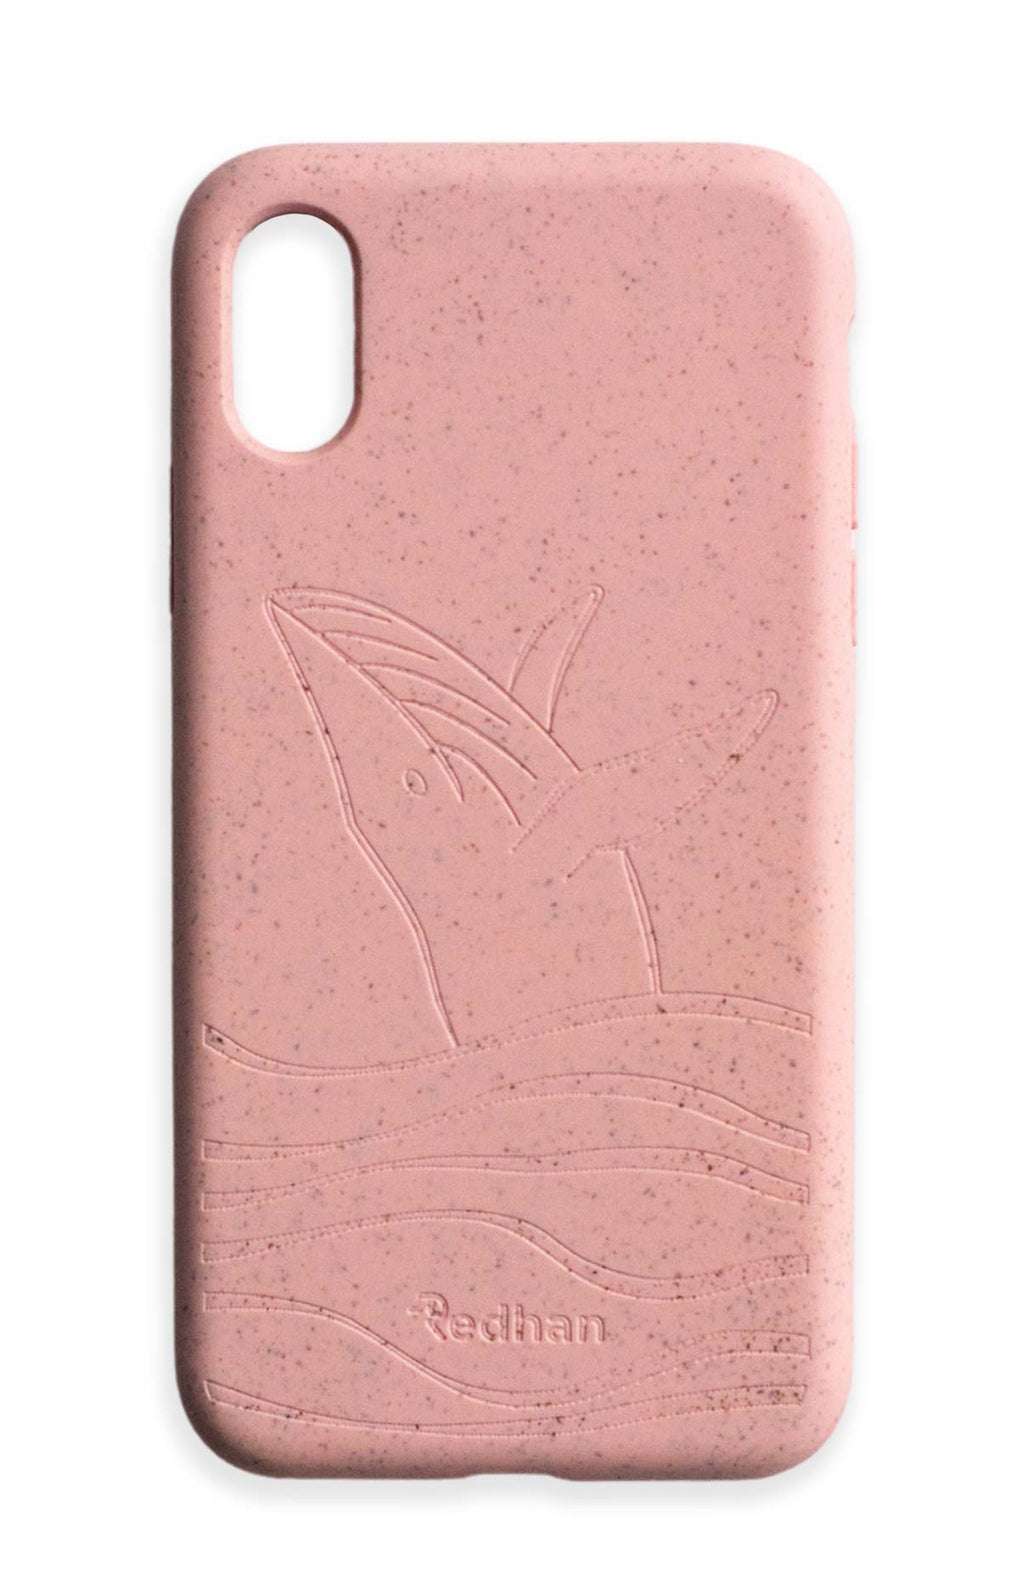 Eco Friendly iPhone X / XS Phone Case - Whale 2.0 in Blush Pink